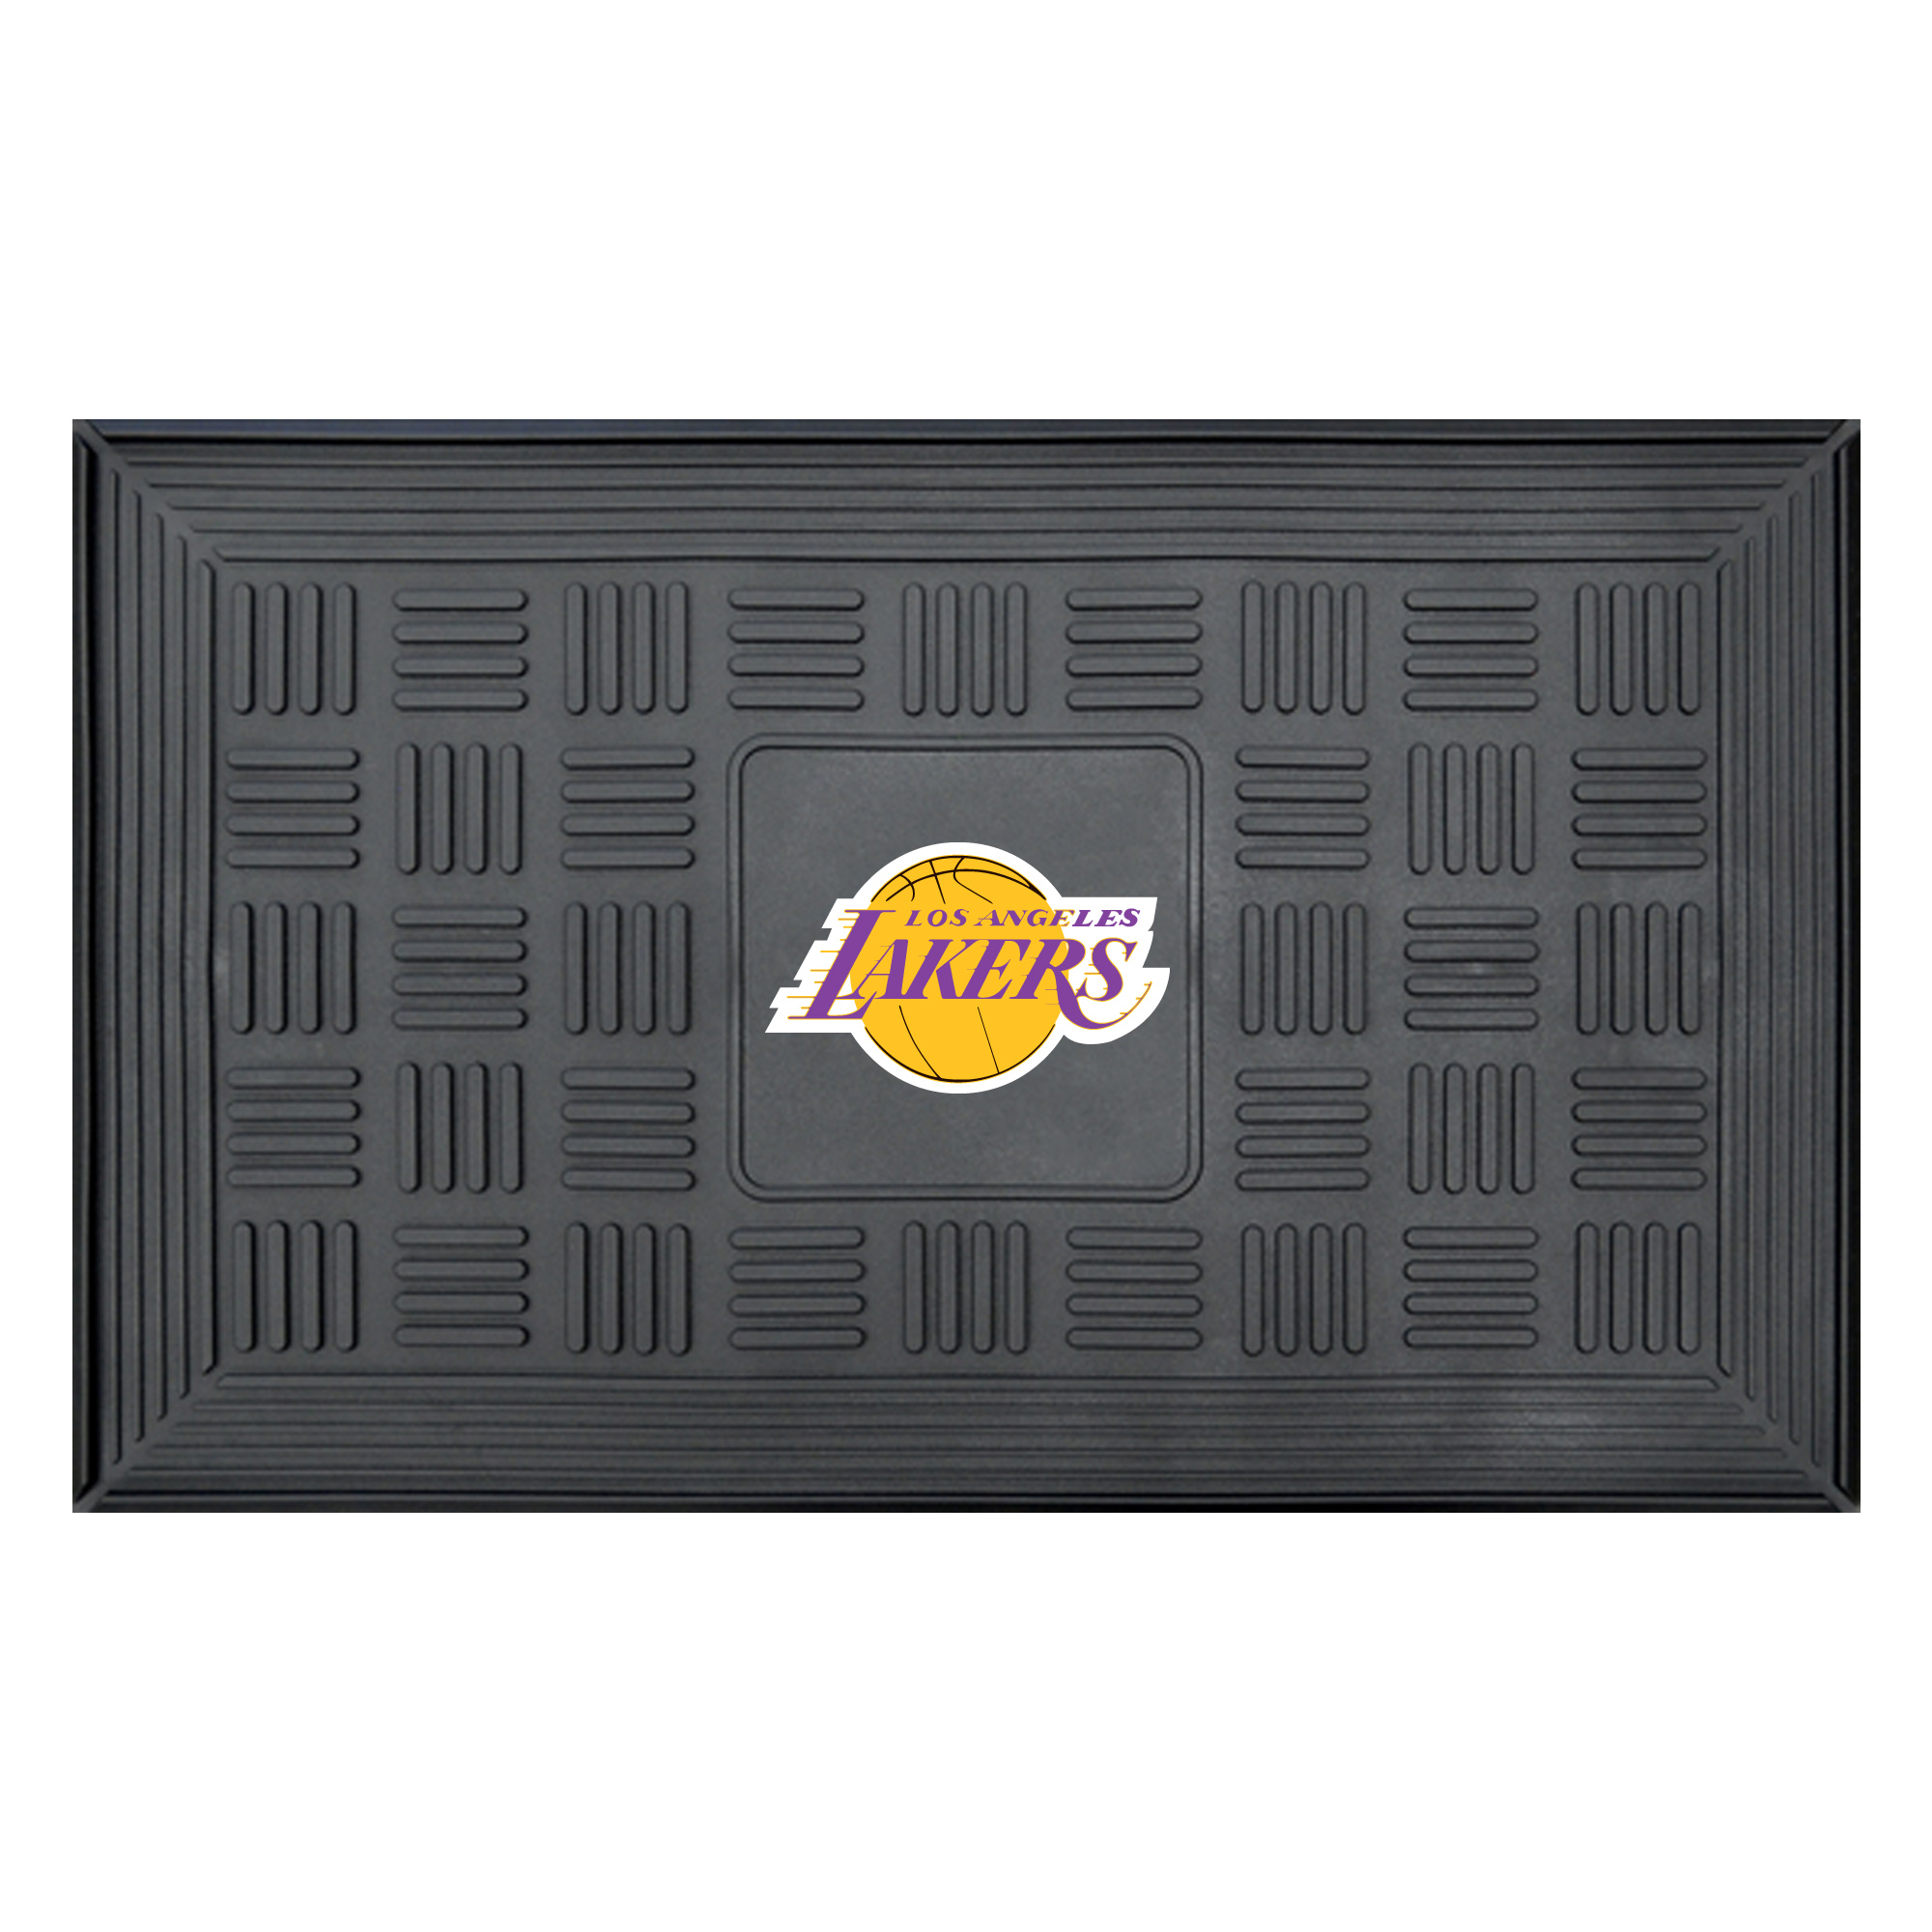 "Los Angeles Lakers 19"" x 30"" Vinyl Medallion Door Mat - Black - No Size"